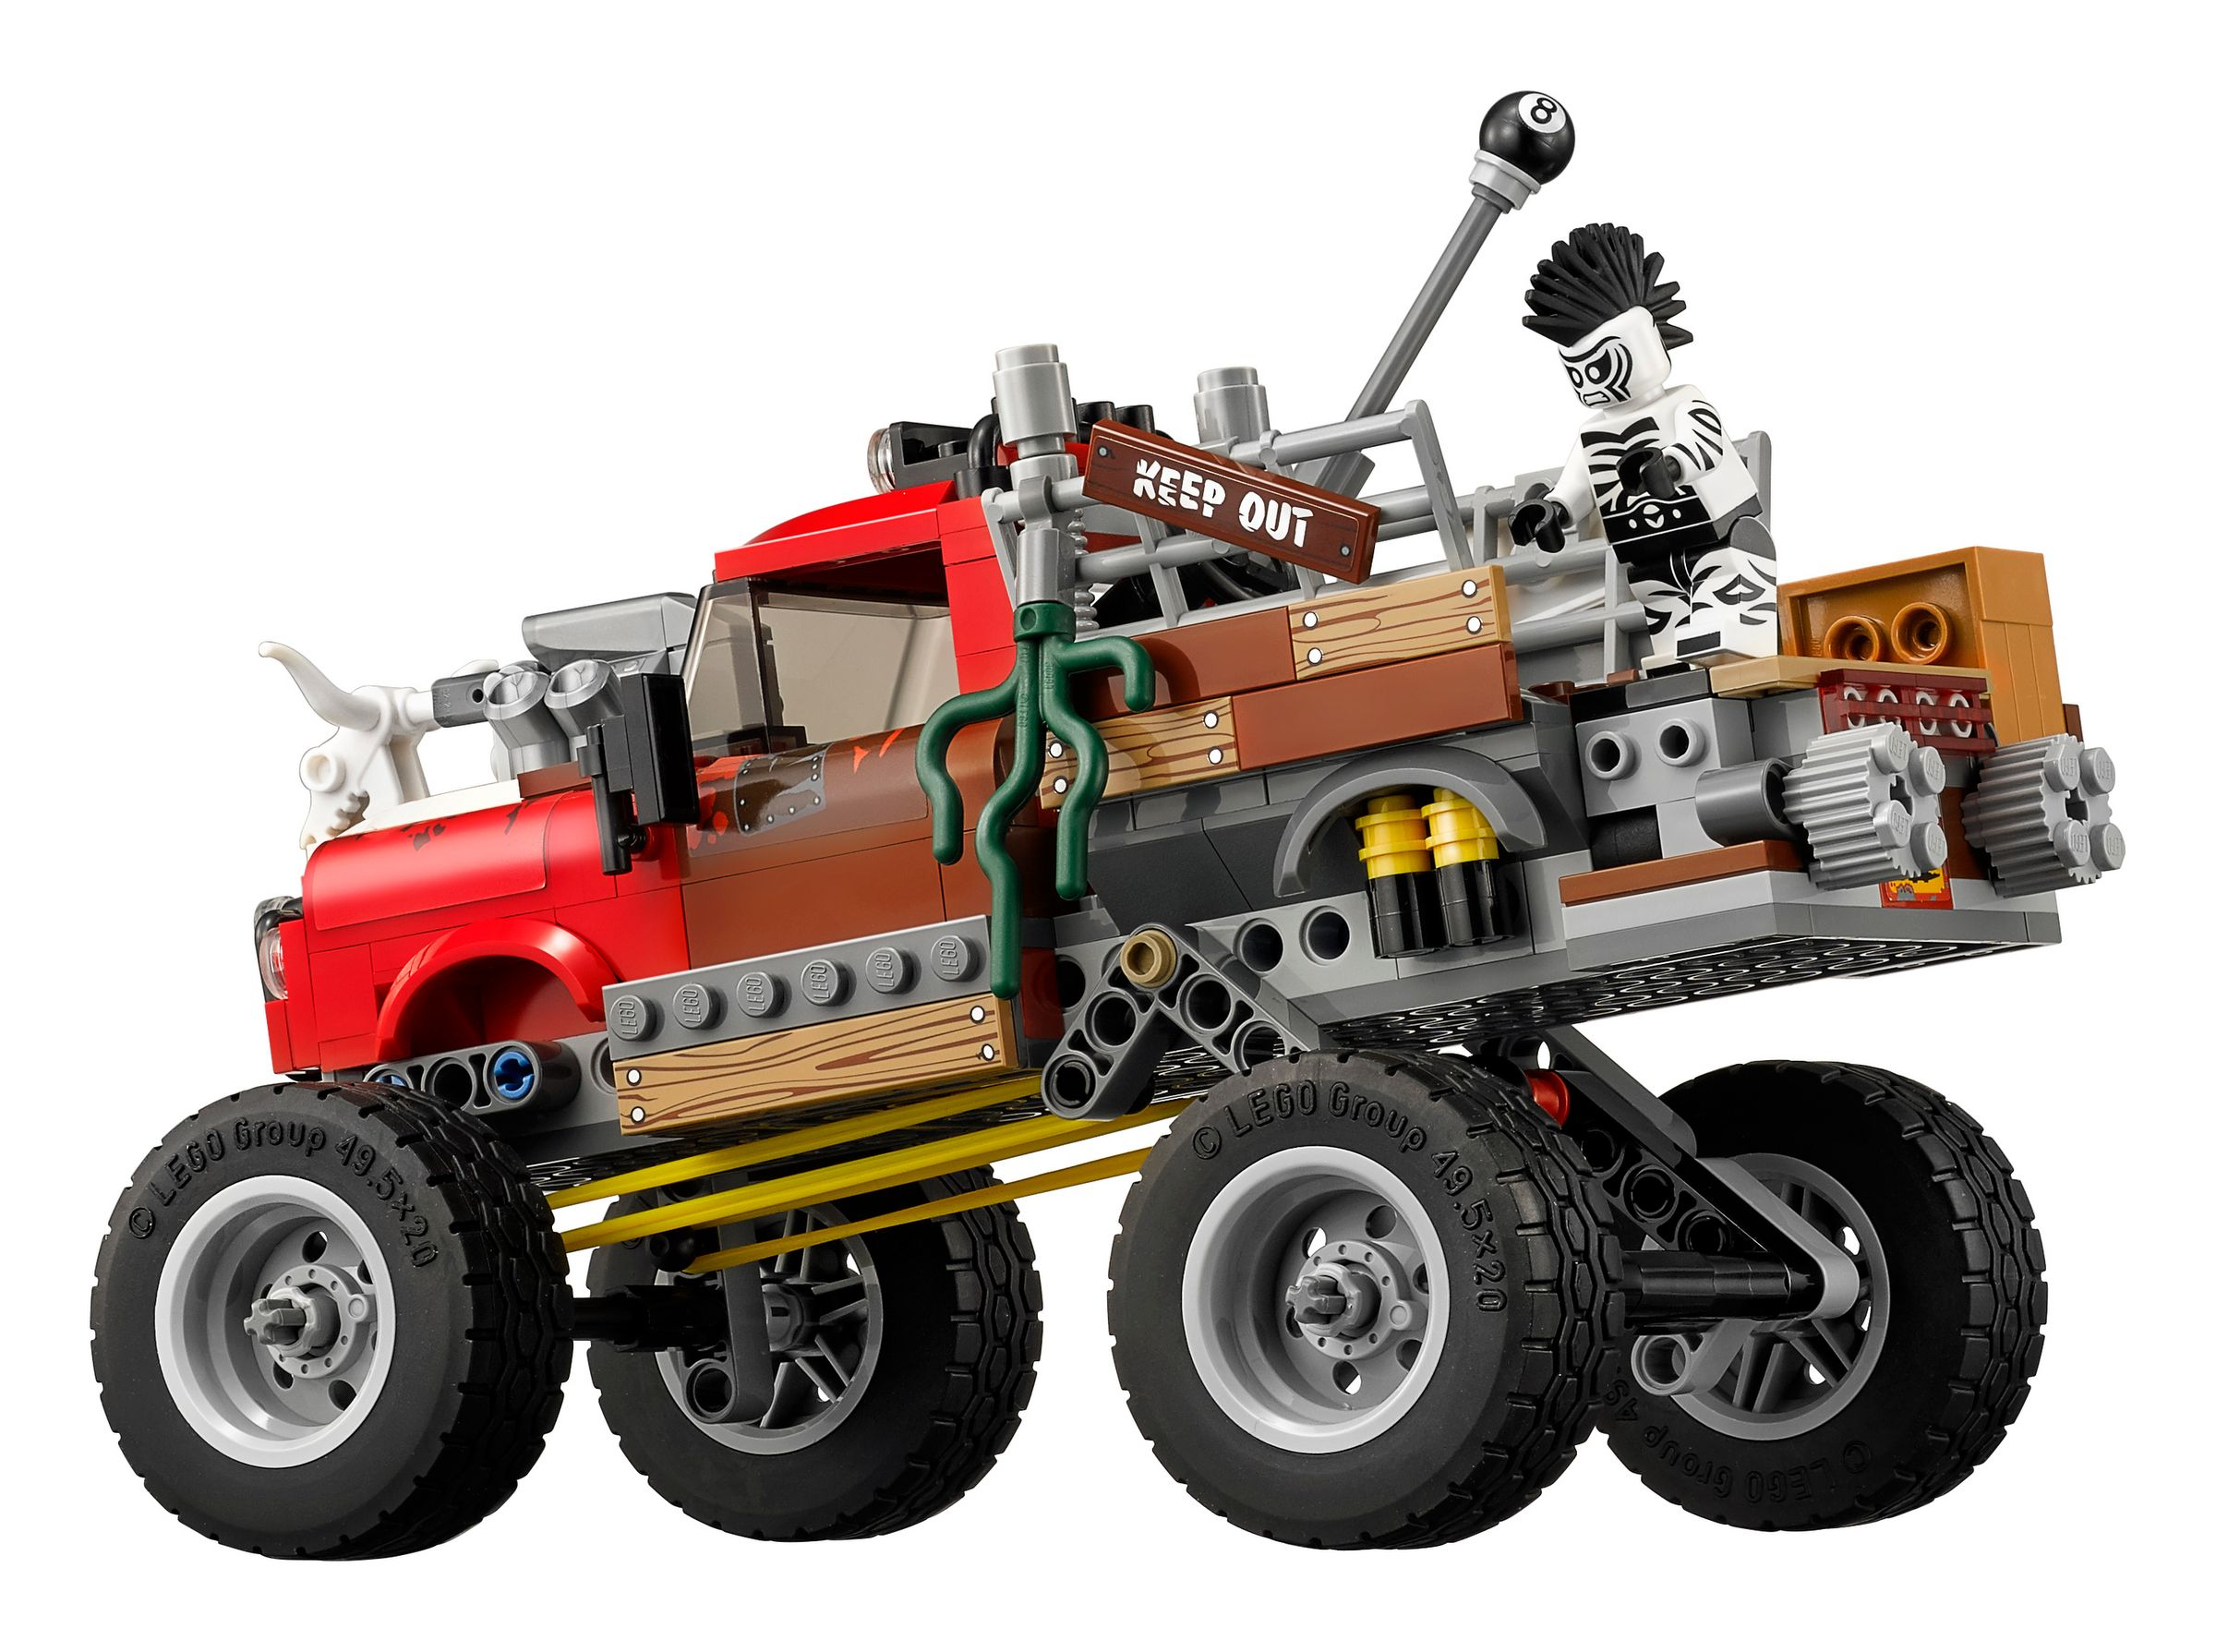 LEGO The LEGO Batman Movie 70907 Killer Crocs Truck LEGO_70907_alt3.jpg